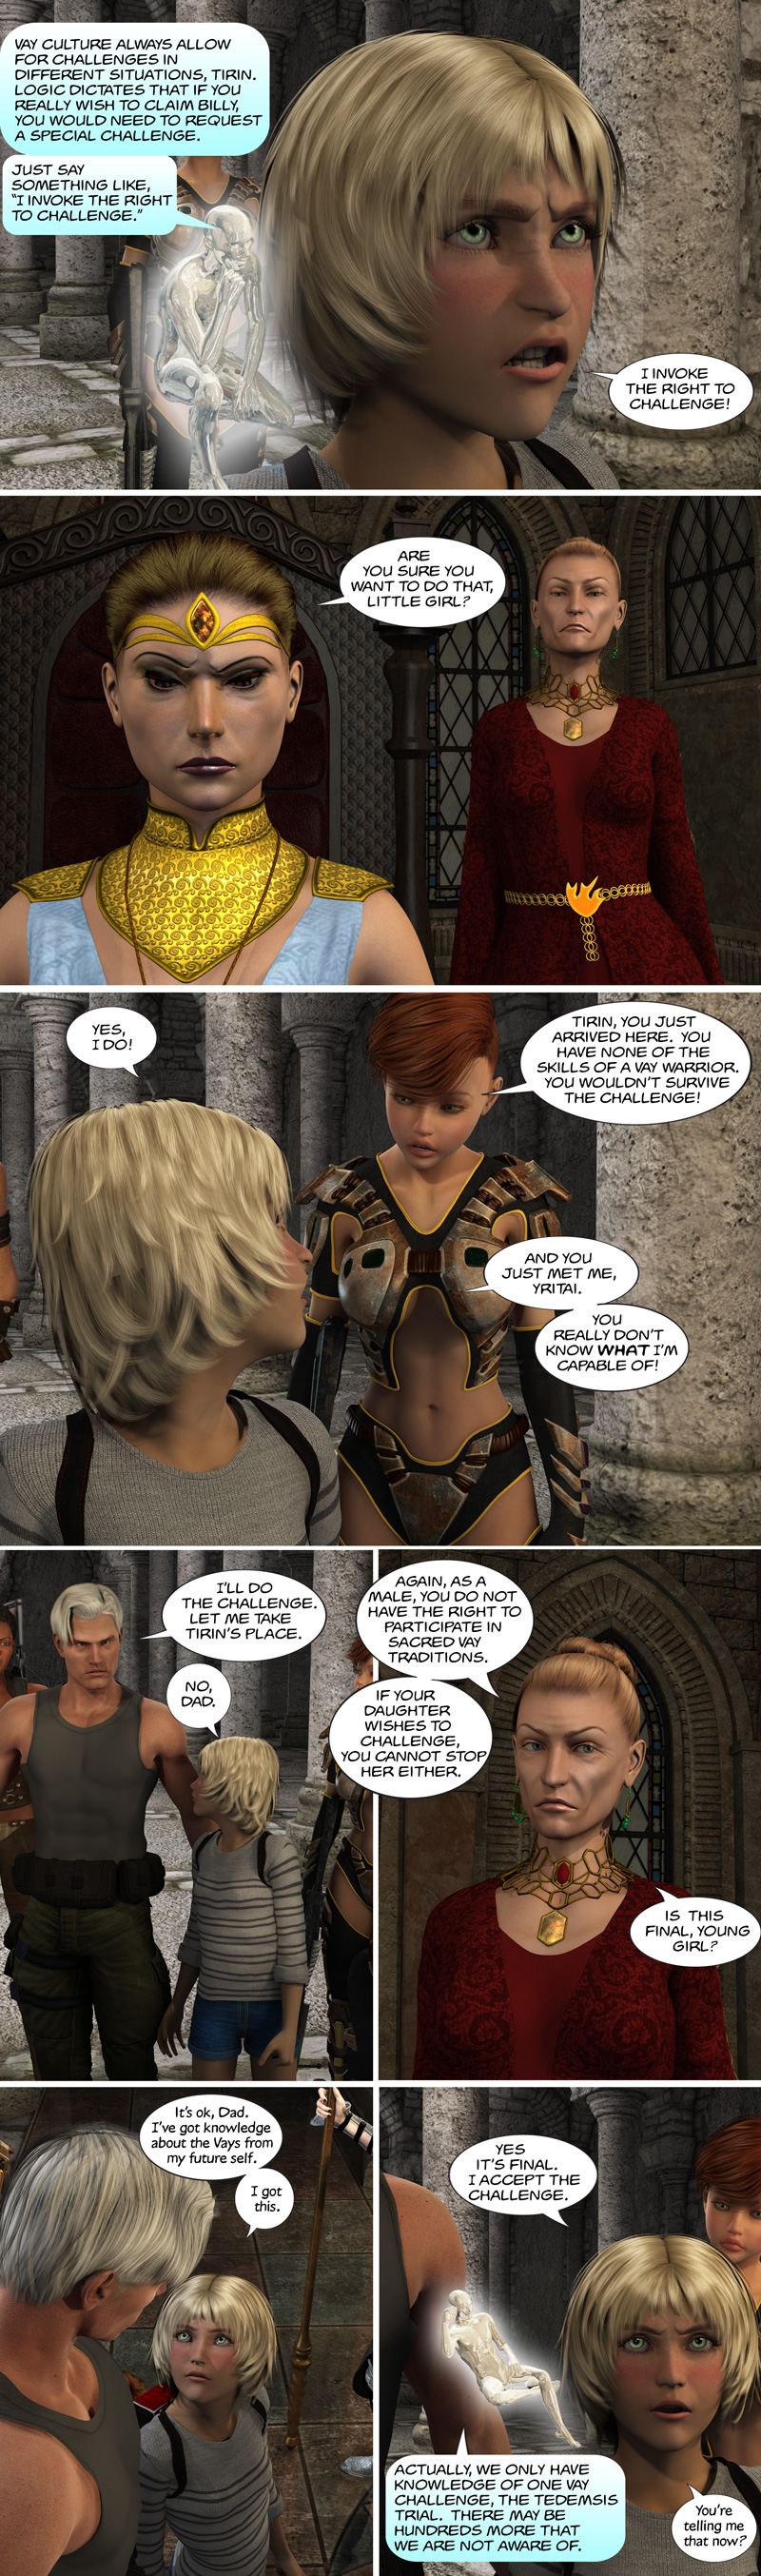 Chapter 12, page 17 – I challenge for the right to own Billy!